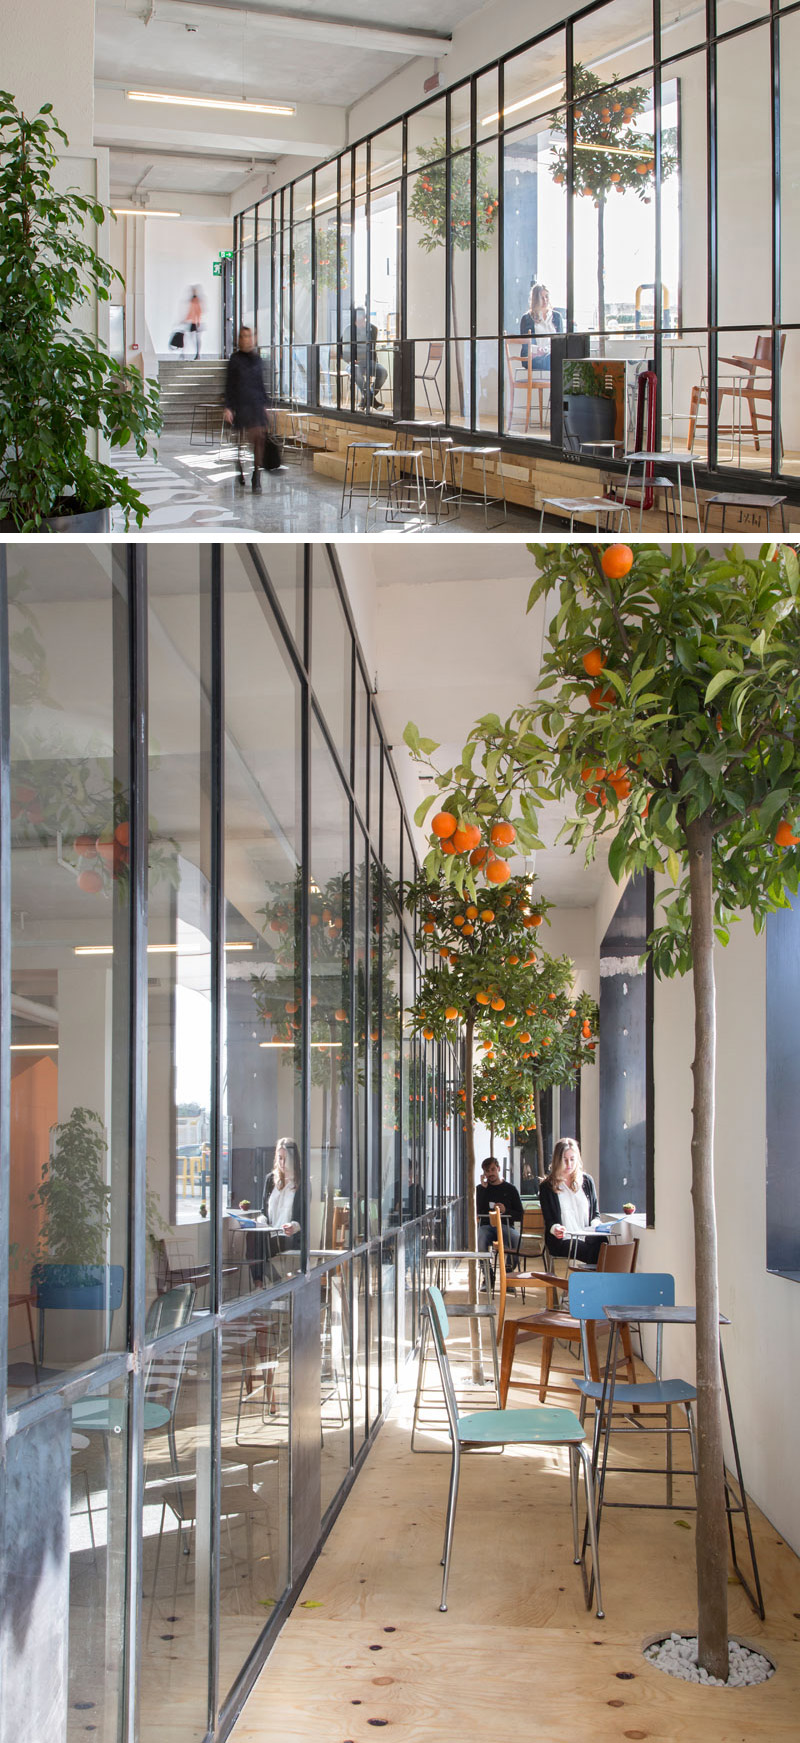 This short stay hotel in Naples, Italy, has an elevated platform at the front of the hotel provides guests with a bright spot to sit with their laptops, books, or snacks, and has large windows that help brighten up the space.